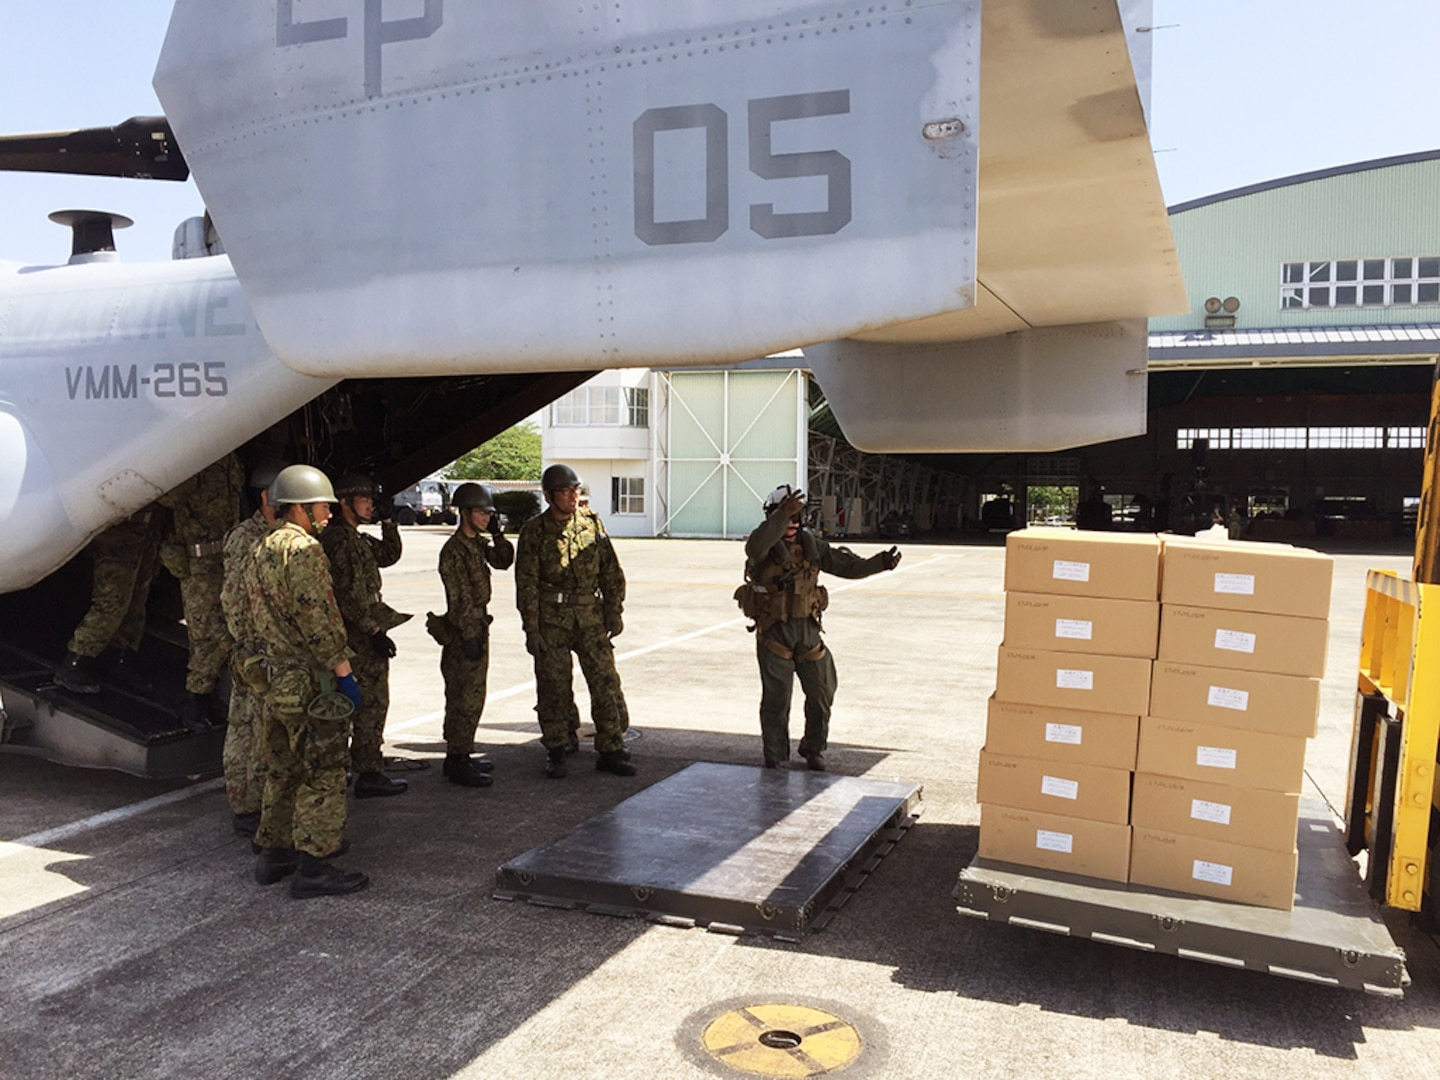 KUMAMOTO, Japan (April 22, 2016) - A 31st Marine Expeditionary Unit (MEU) Marine guides a pitch fork lift truck as Japan Self-Defense Force (JSDF) members prepare to load relief supplies onto a MV-22B Osprey from the Marine Medium Tiltrotor Squadron 265 (Reinforced), 31st MEU at Kumamoto Airport.  The supplies are in support of the JSDF-led relief effort after a series of earthquakes struck the island of Kyushu. The 31st MEU is the only continually forward-deployed MEU and remains the Marine Corps' force-in-readiness in the Indo-Asia-Pacific region.